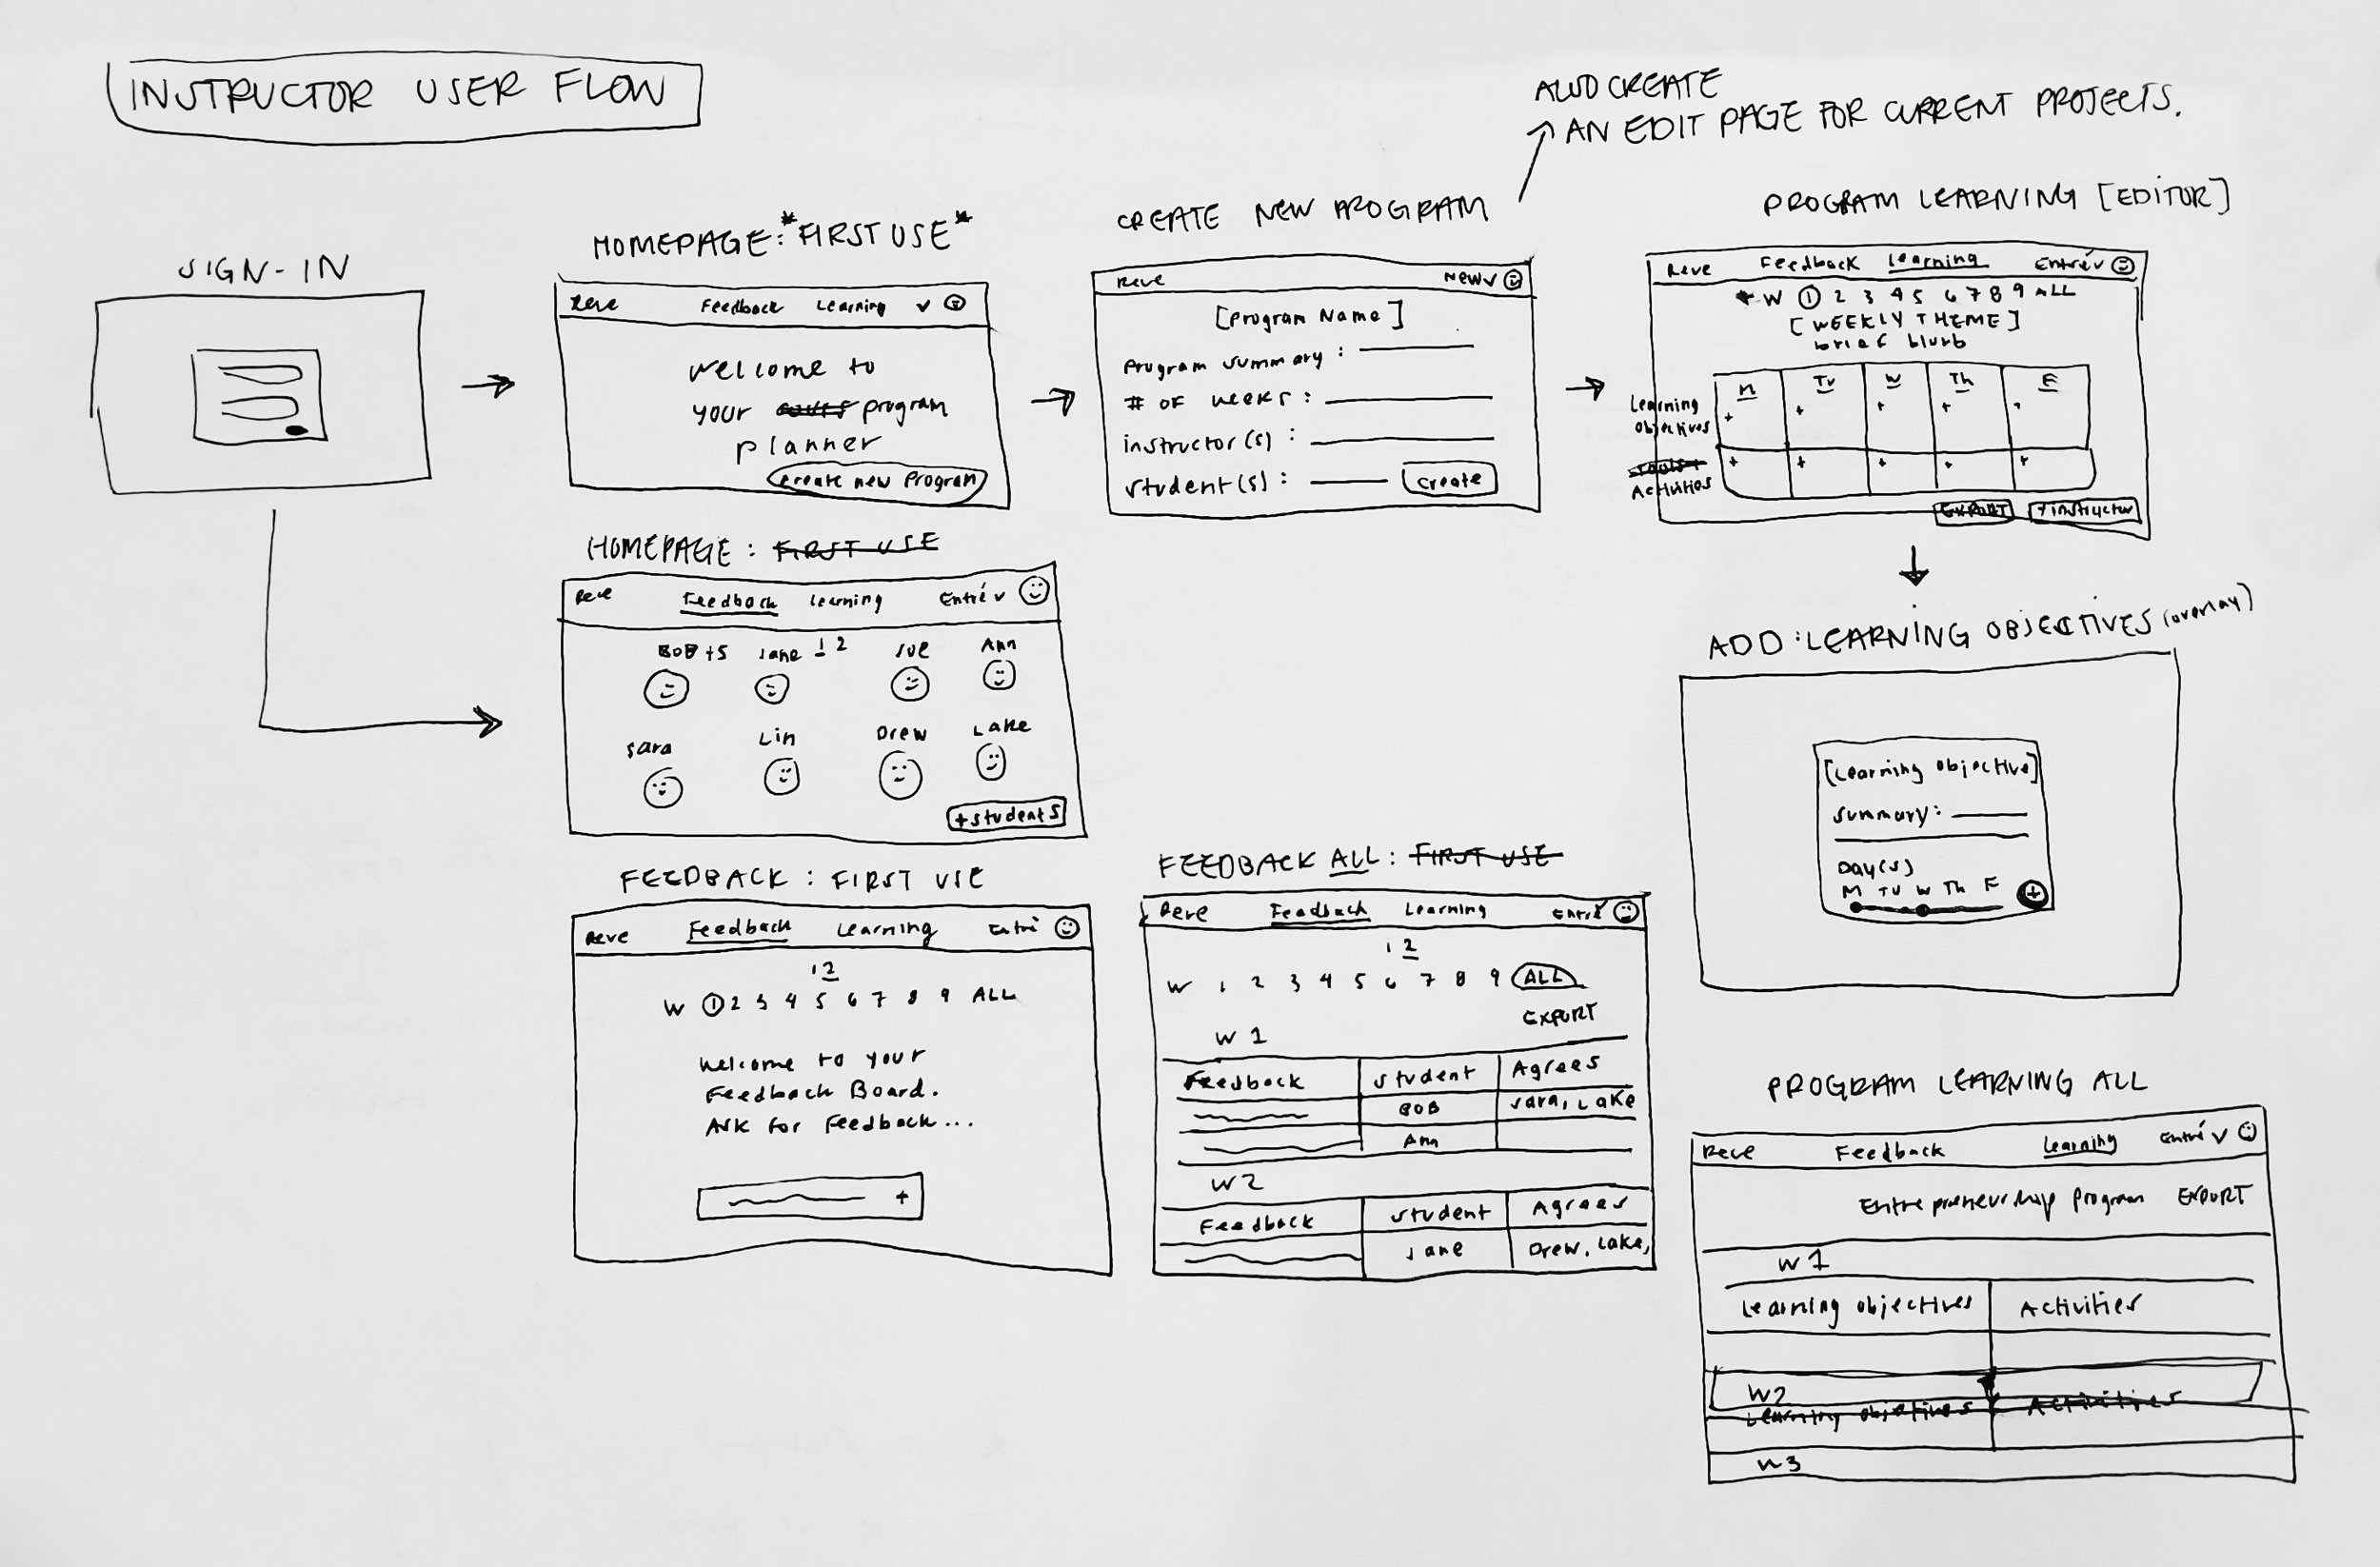 Hand drawn sketches for the user flow of the Instructor view of the platform.